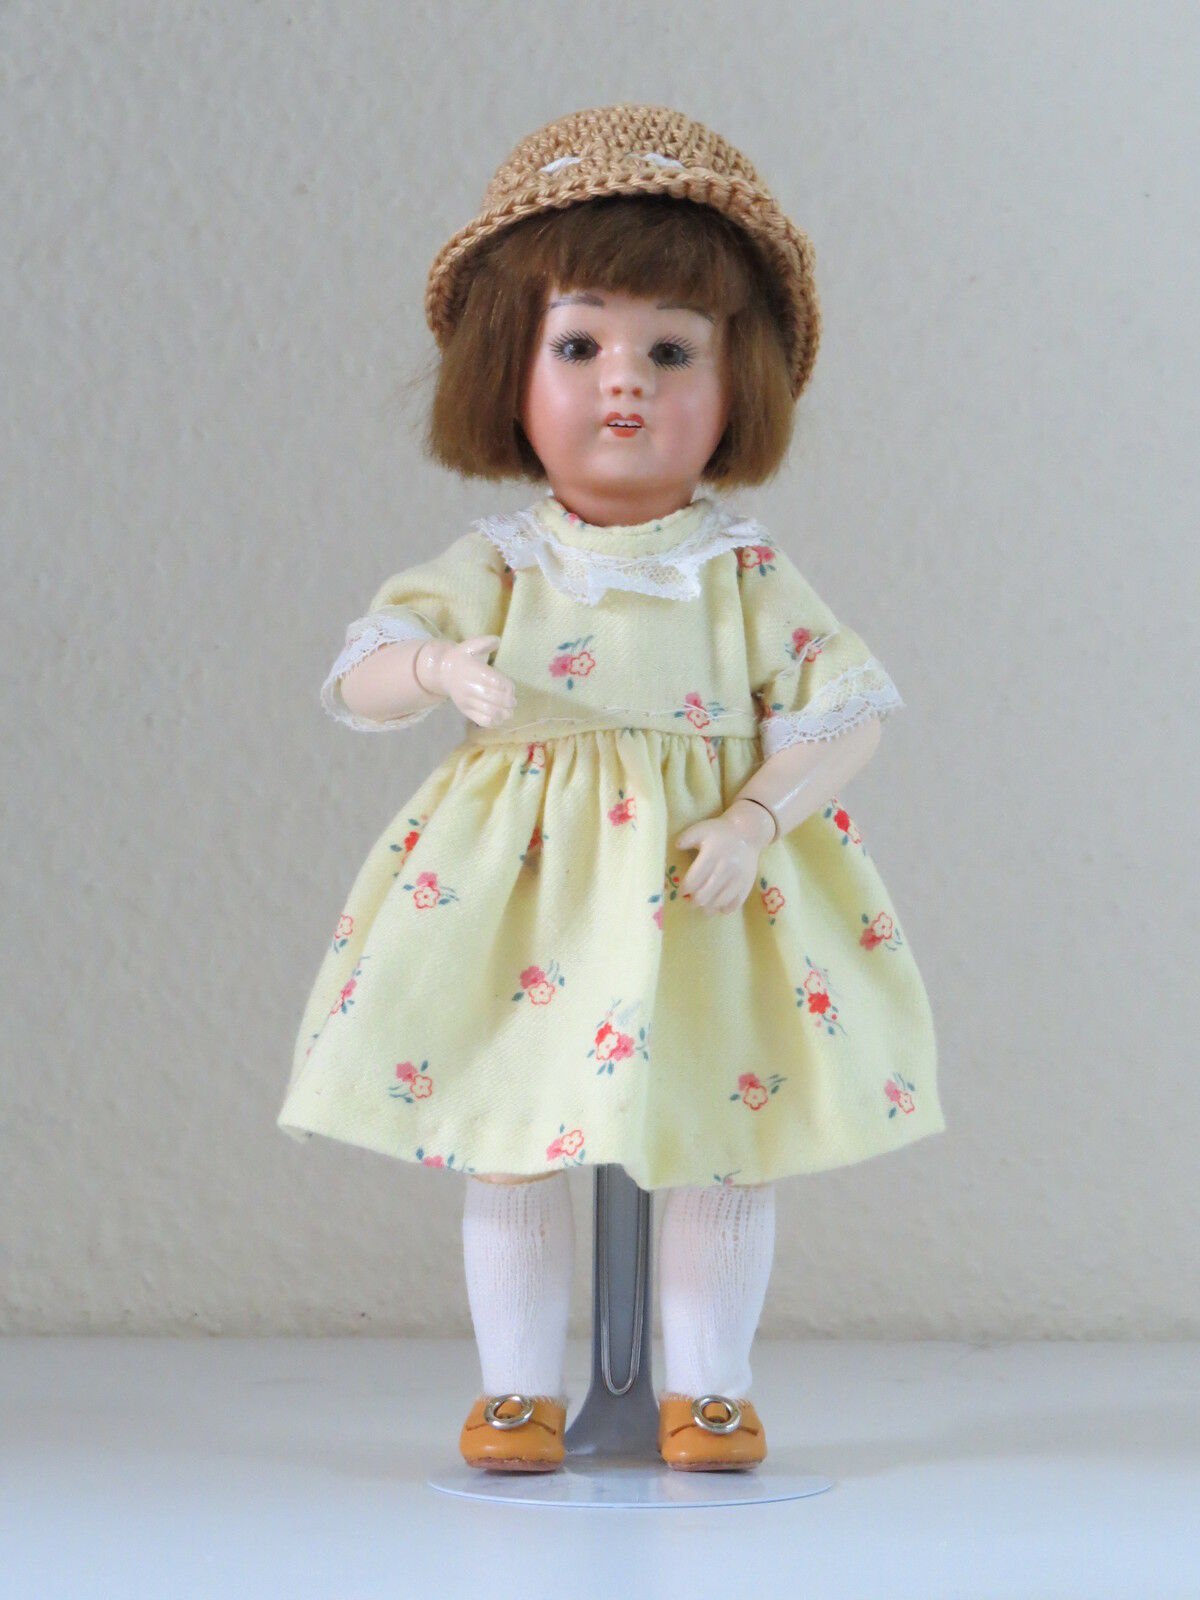 Loulotte  Loulette  Asiatique  N°   3   .   24 cm  Poupée  creation  Doll  Asian